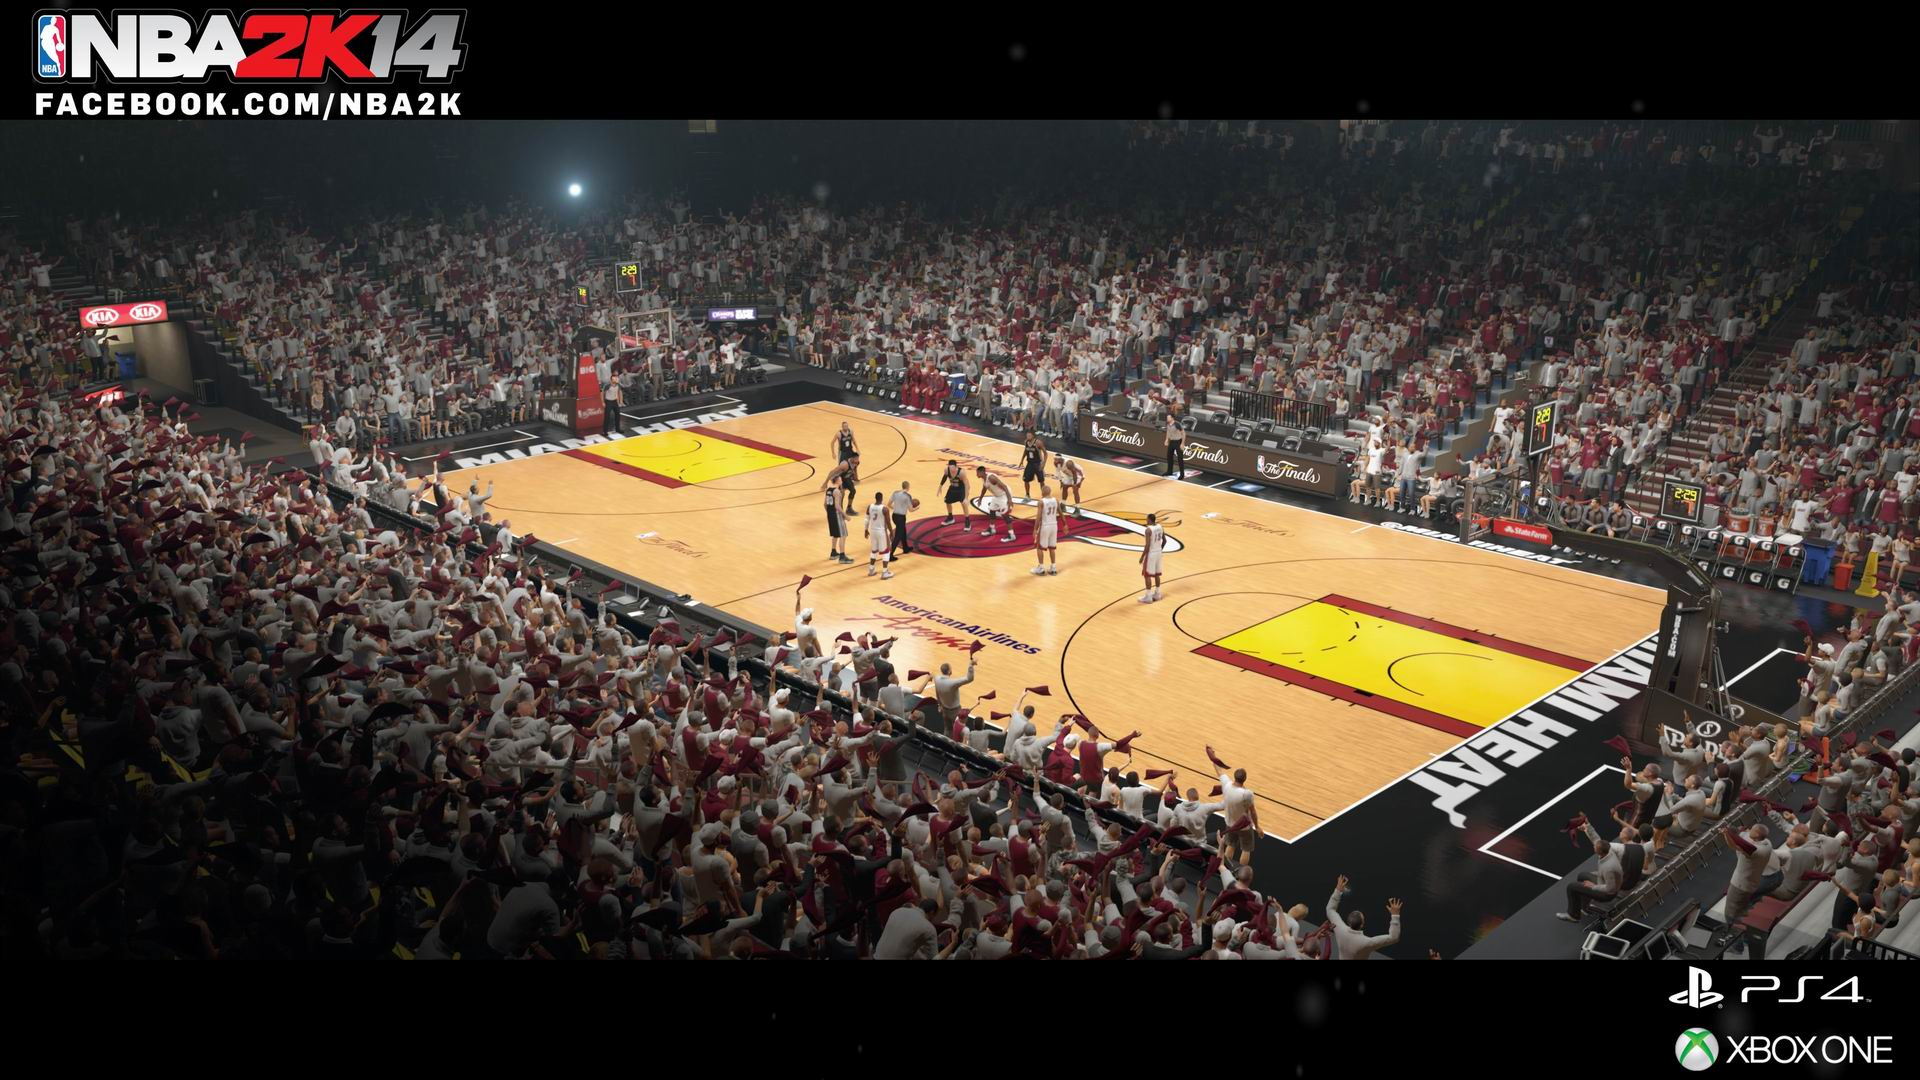 NBA2K14_PS4_arena_during_finals